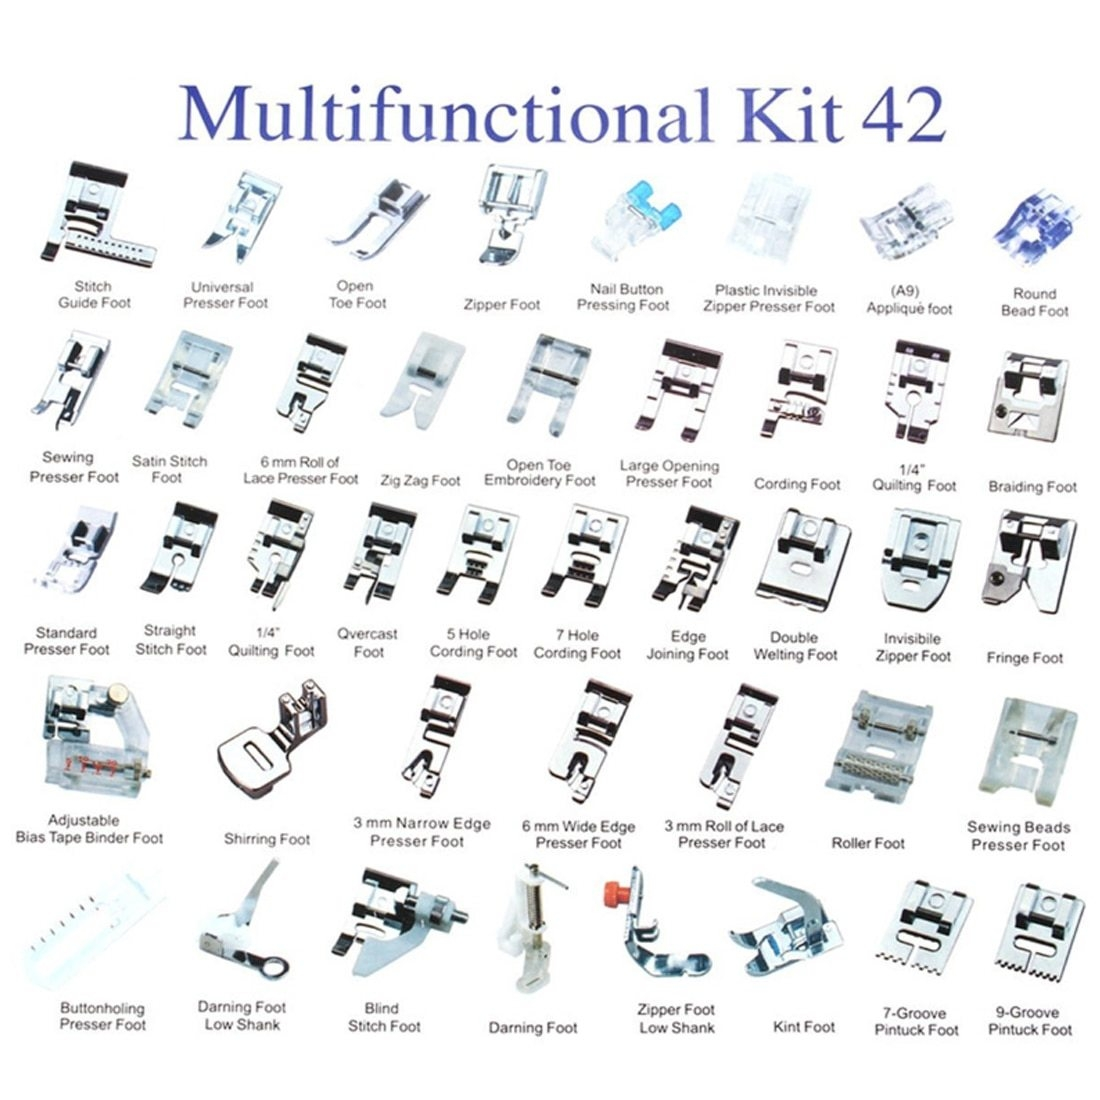 UNIVERSAL GENERIC DOMESTIC SEWING MACHINE APPLIQUE FOOT